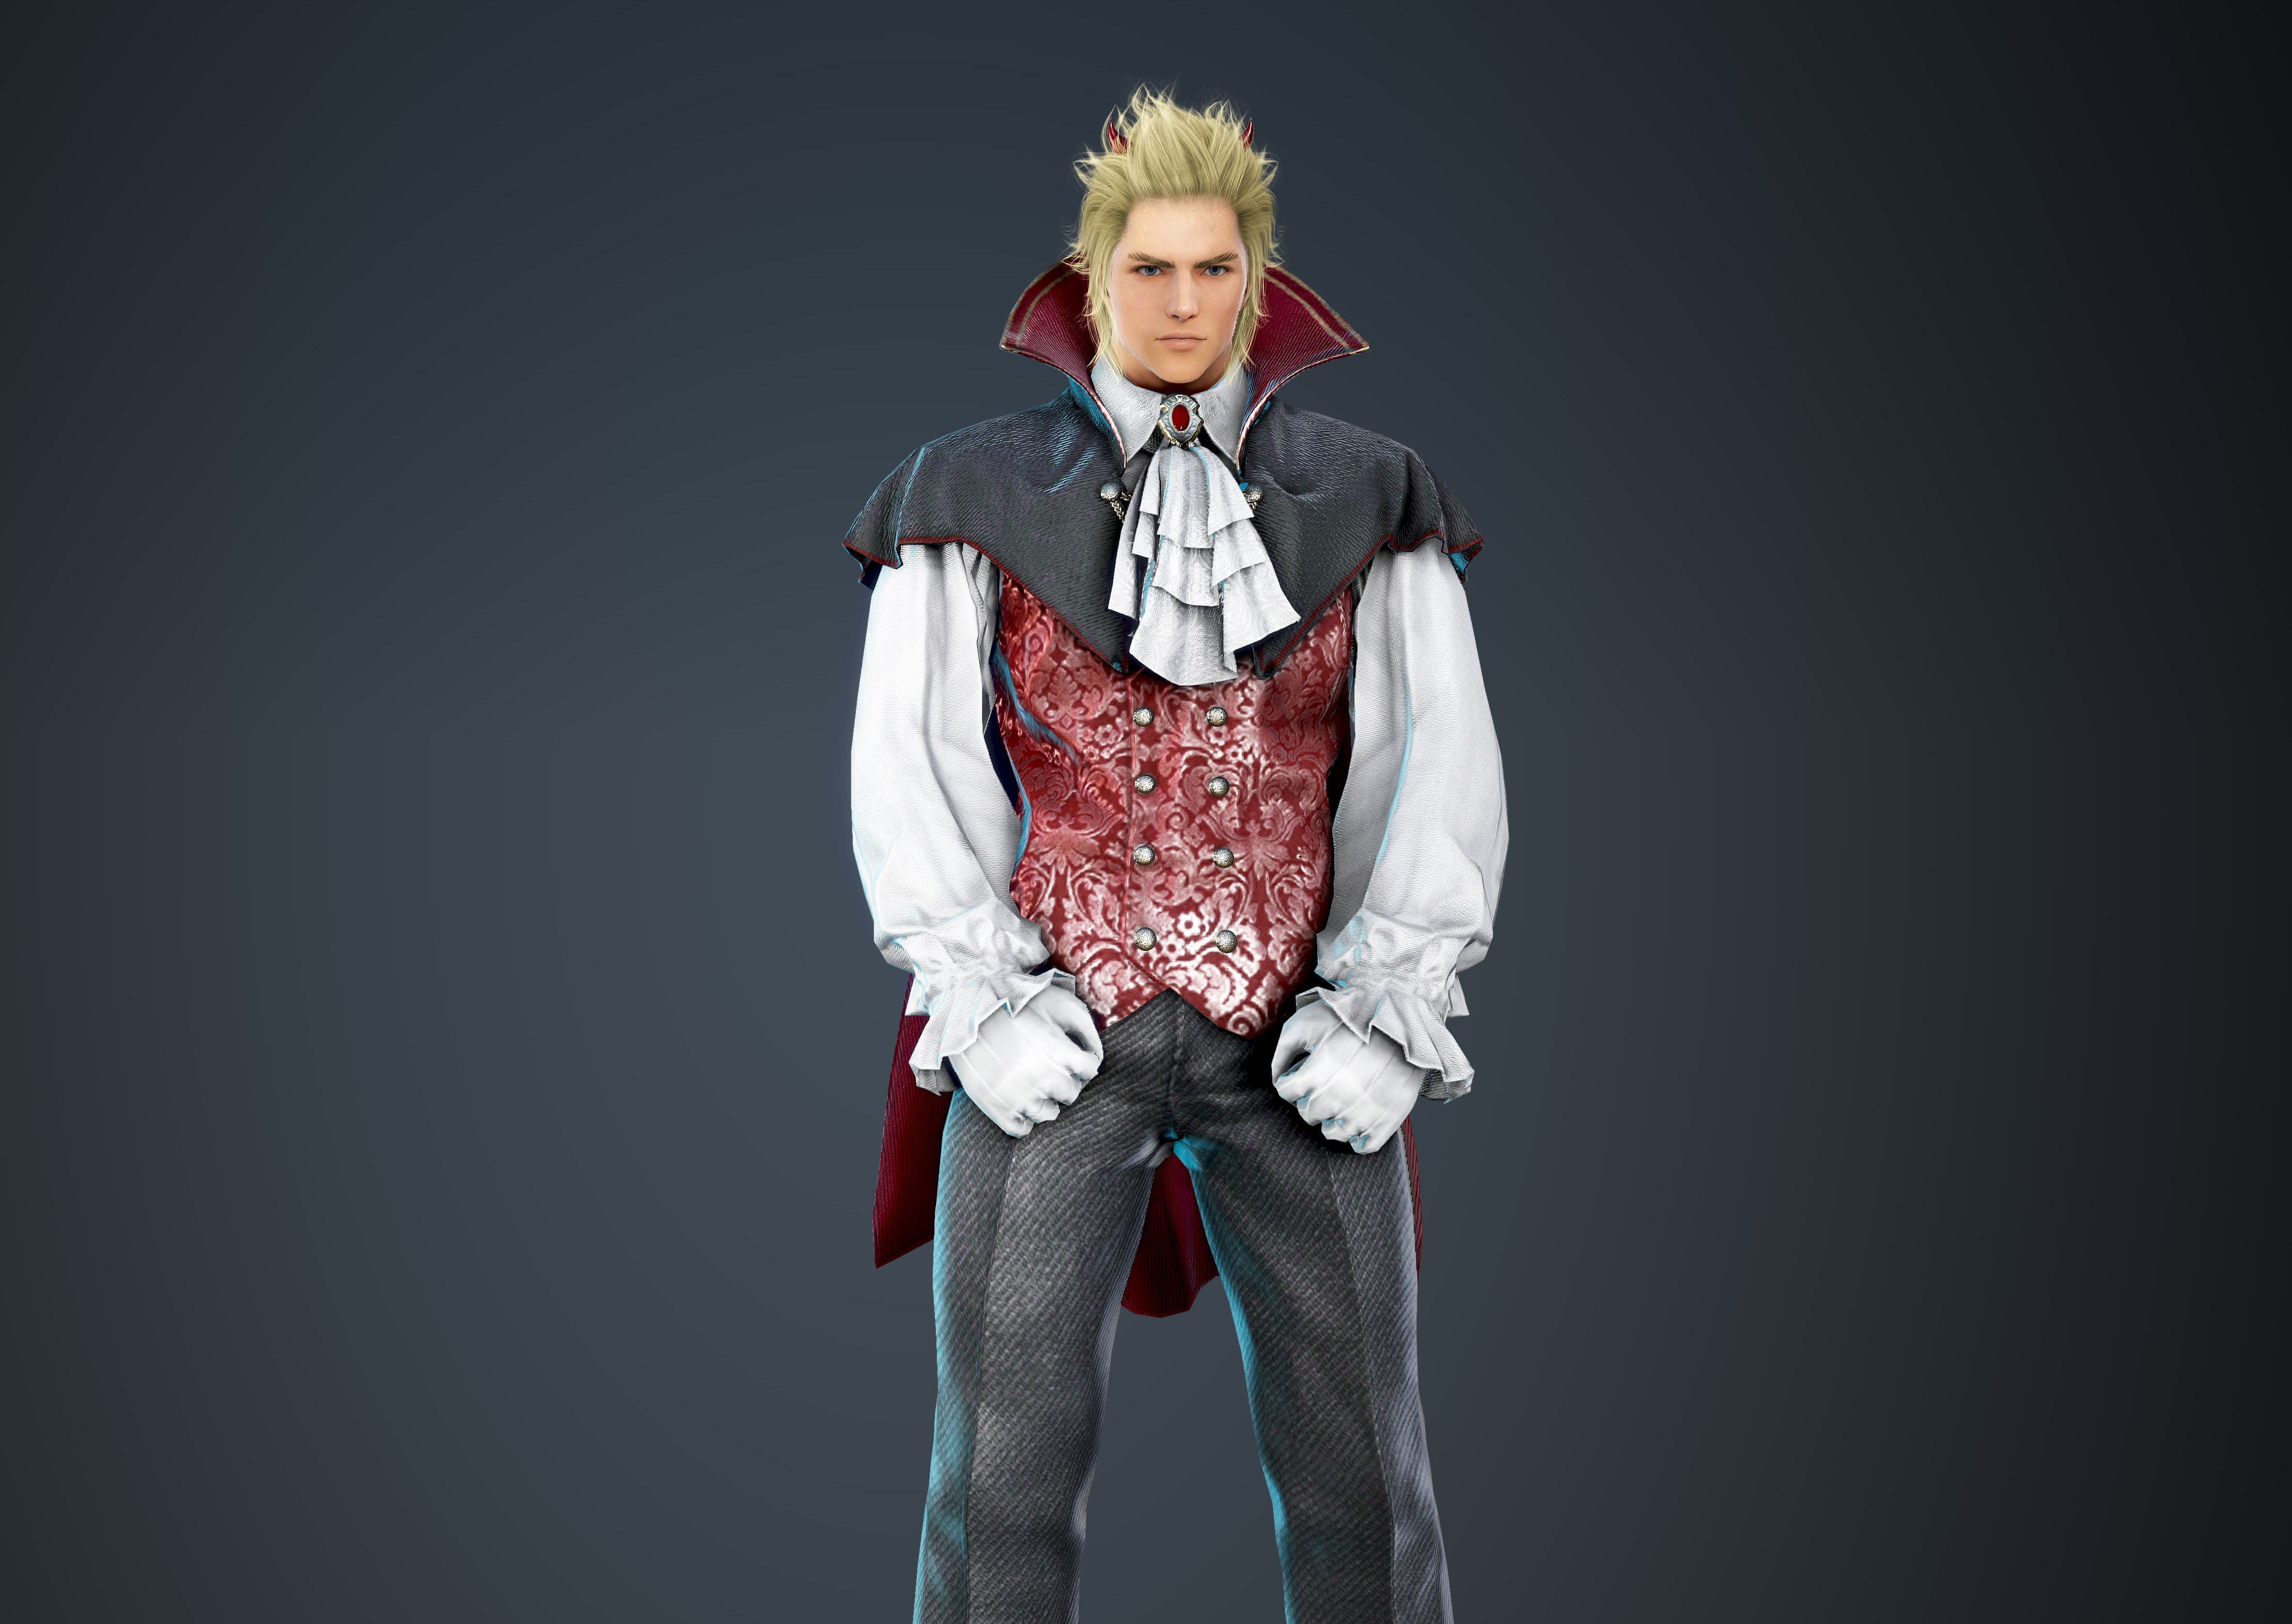 Pin On Black Desert Online Outfits